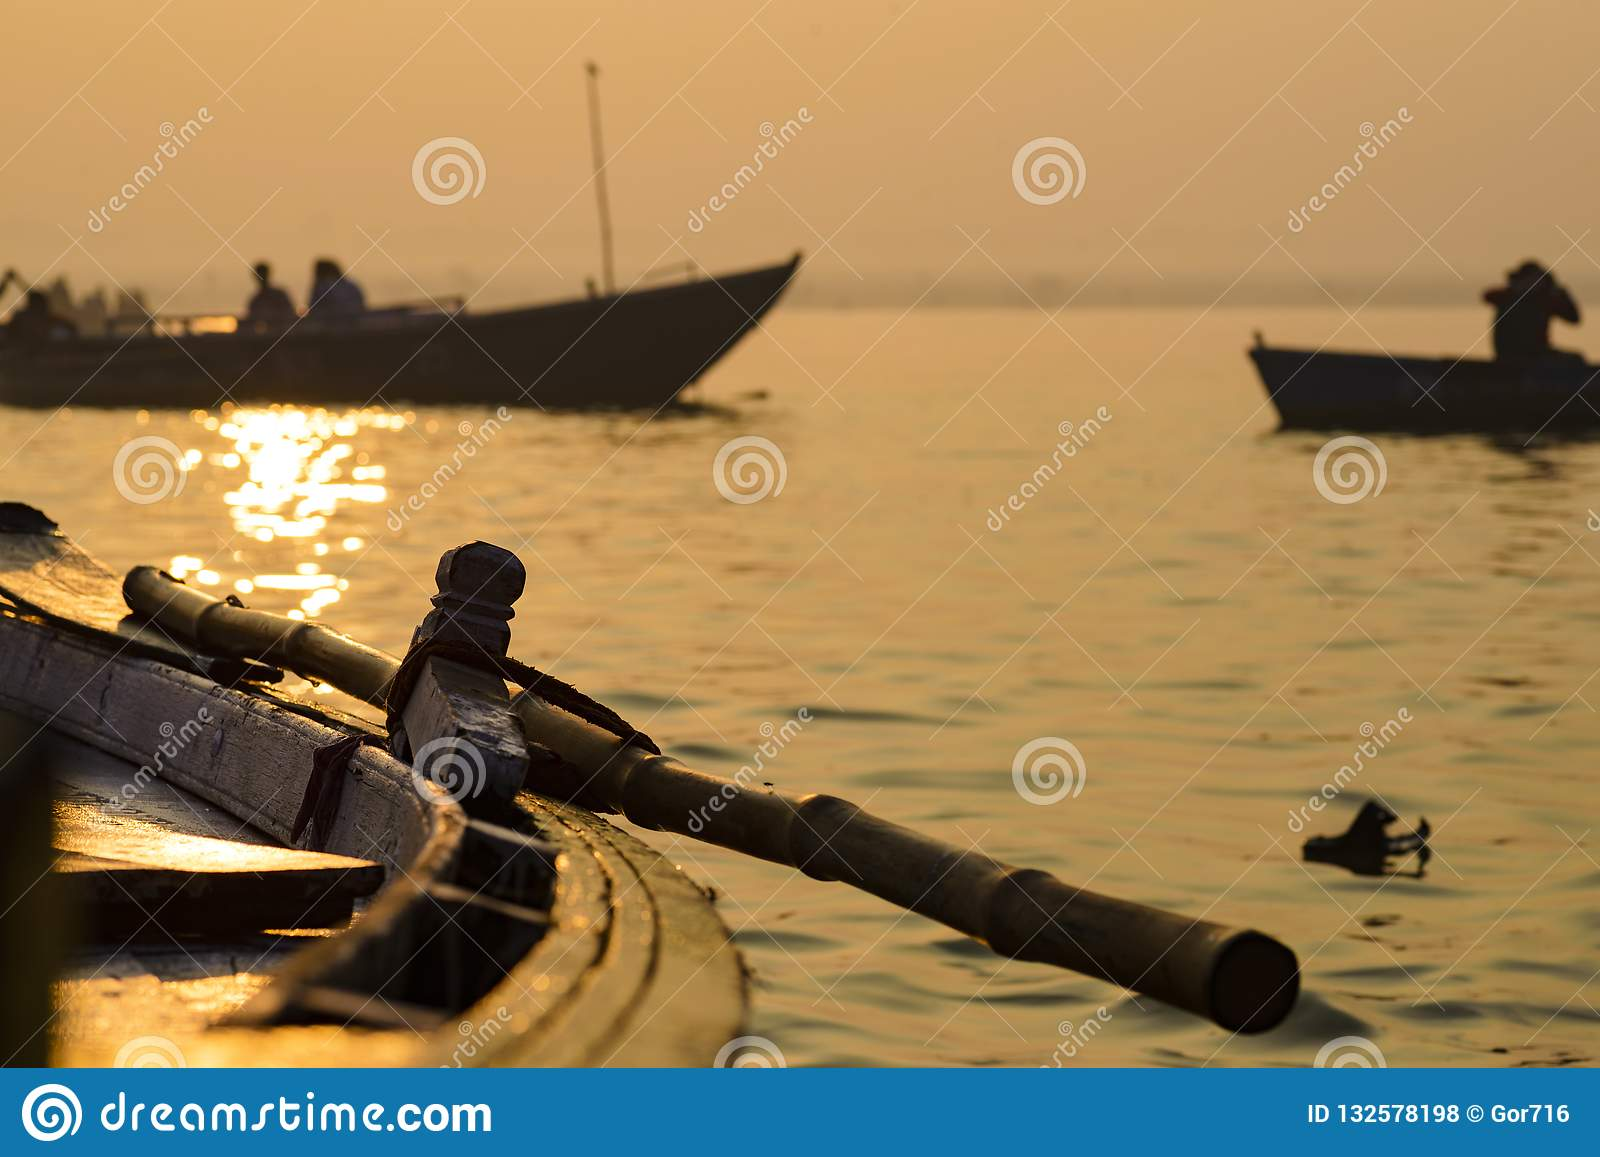 Paddle to the boat on the gang of Varanasi 2016